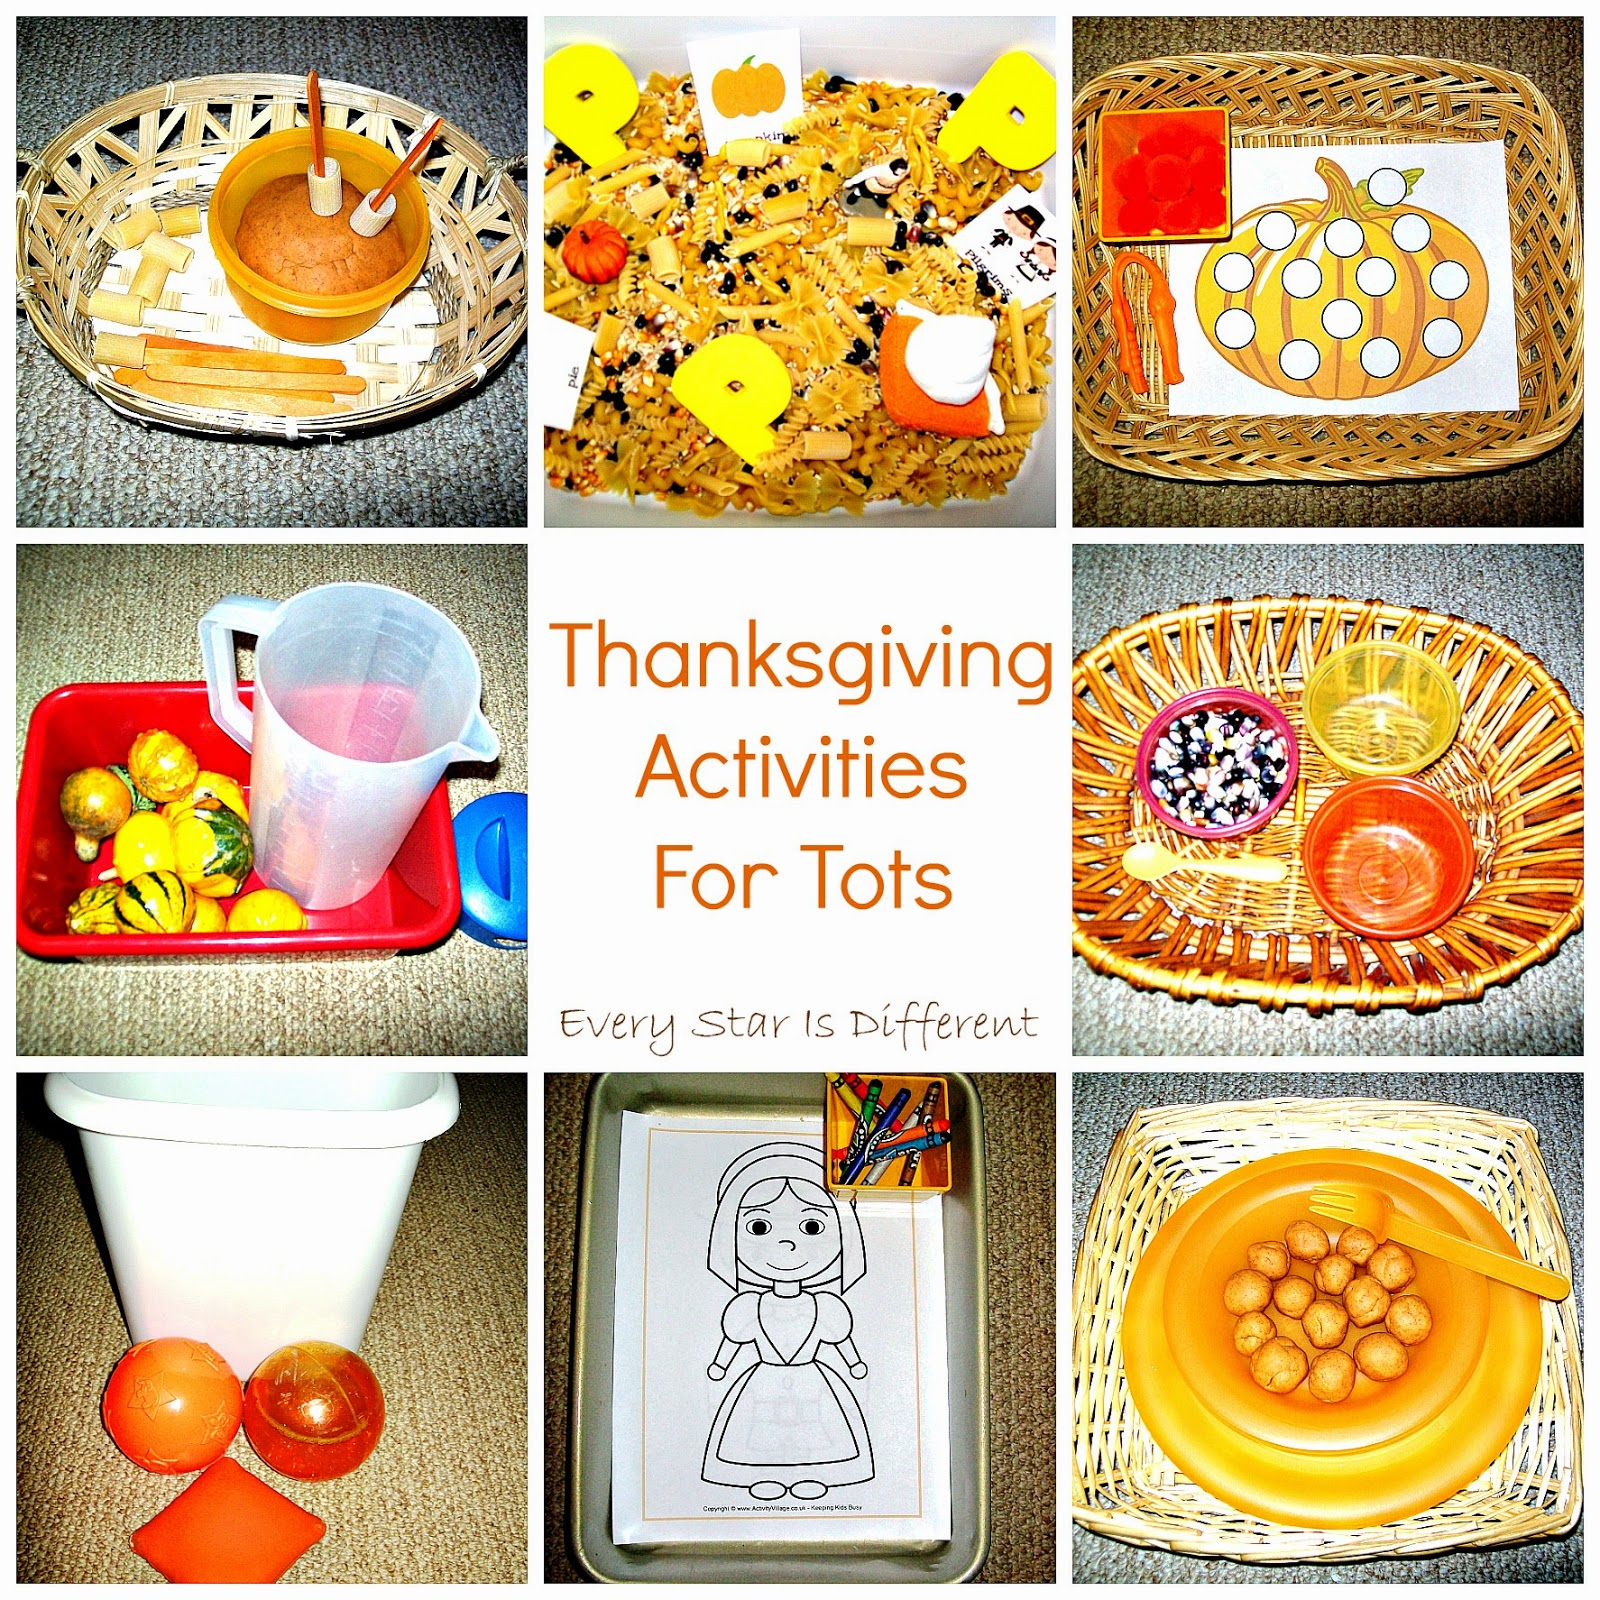 Thanksgiving Activities for Tots